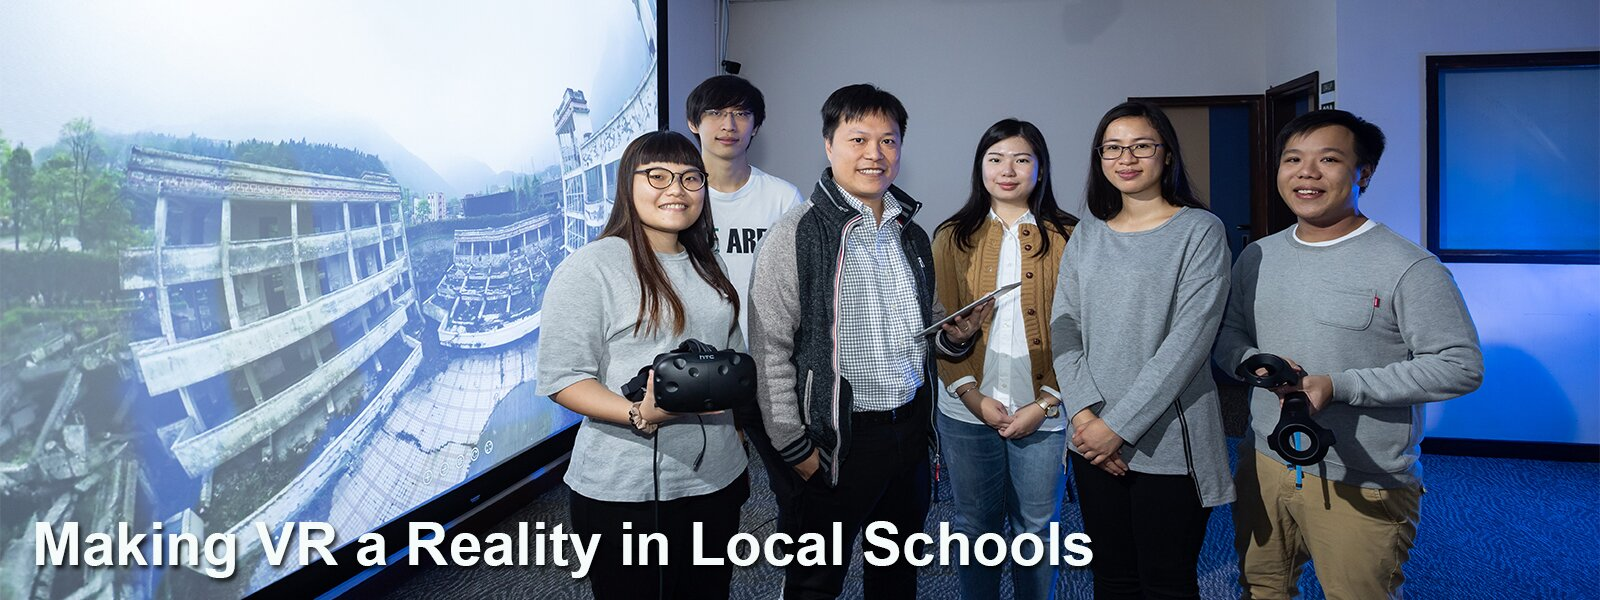 Making VR a Reality in Local Schools